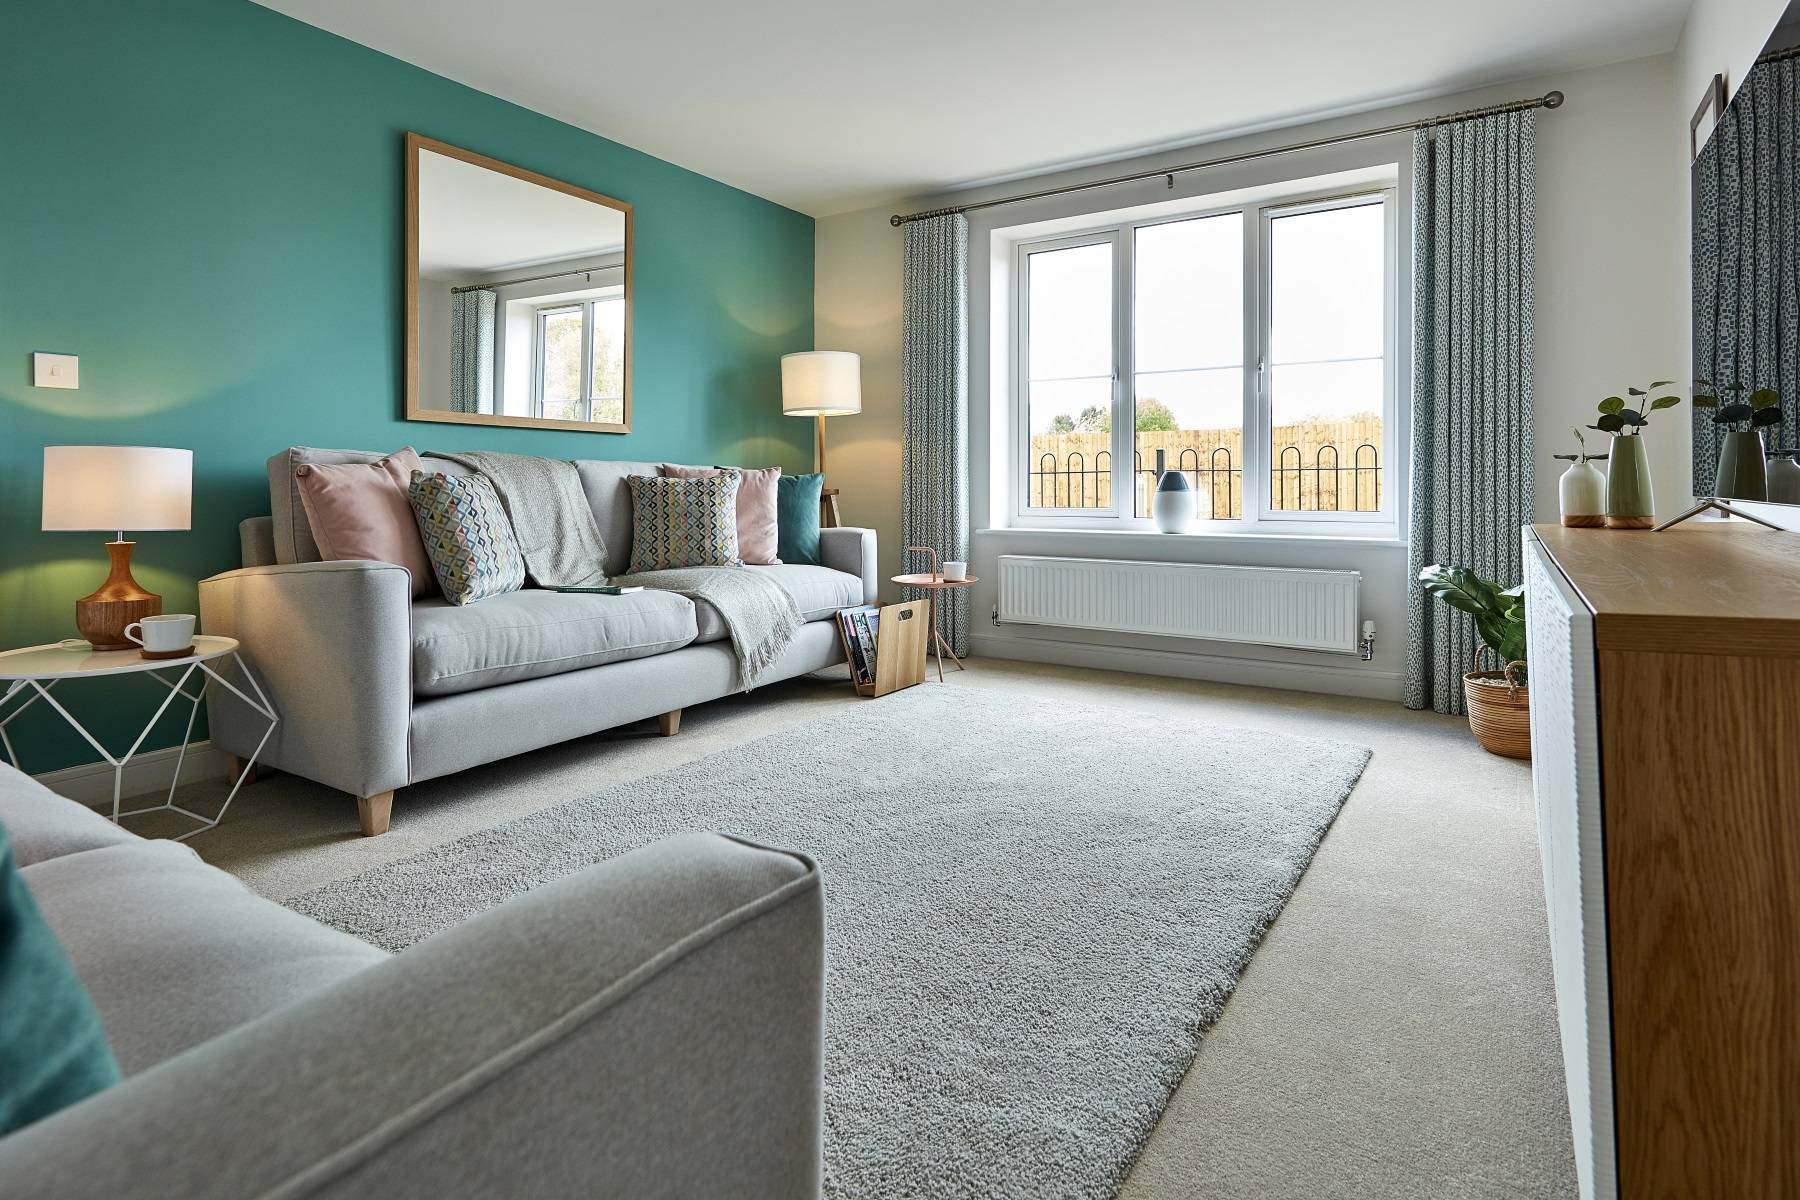 TW Exeter - Mayfield Gardens - Midford example living room